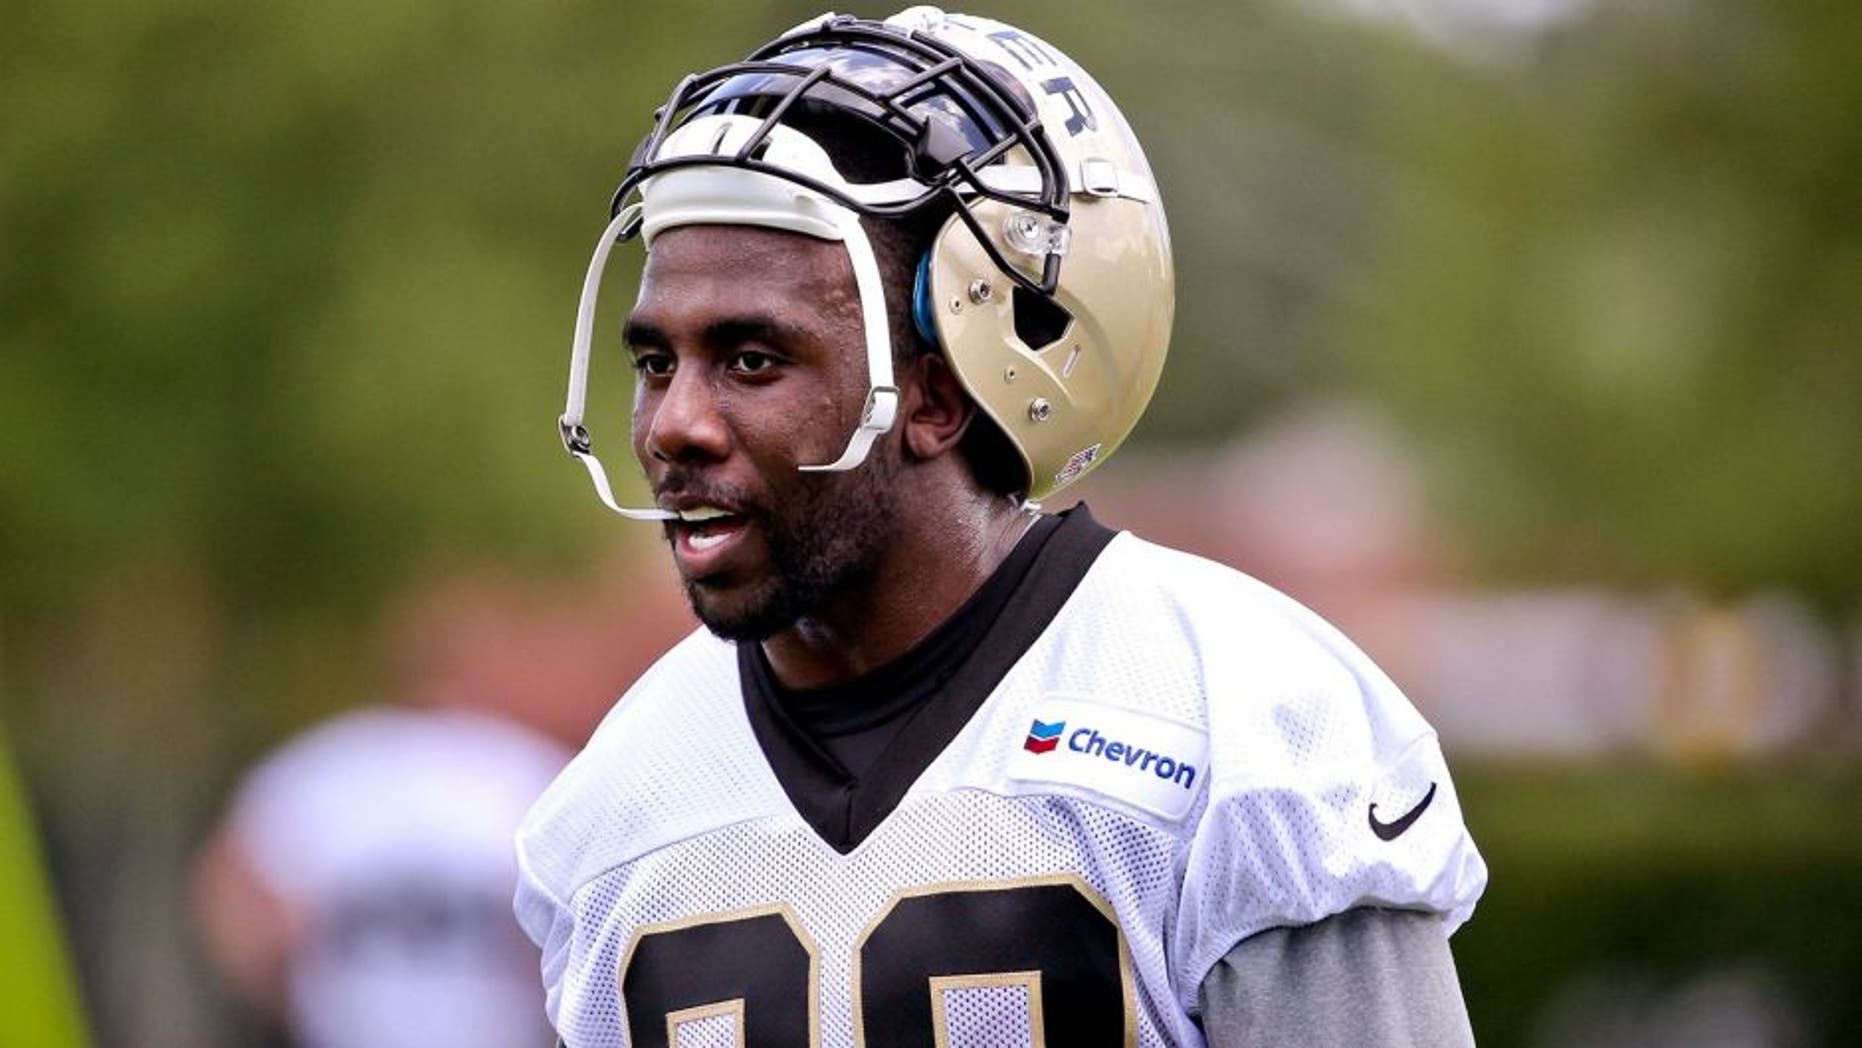 May 28, 2015; New Orleans, LA, USA; New Orleans Saints running back C.J. Spiller (28) during organized team activities at the New Orleans Saints Training Facility. Mandatory Credit: Derick E. Hingle-USA TODAY Sports